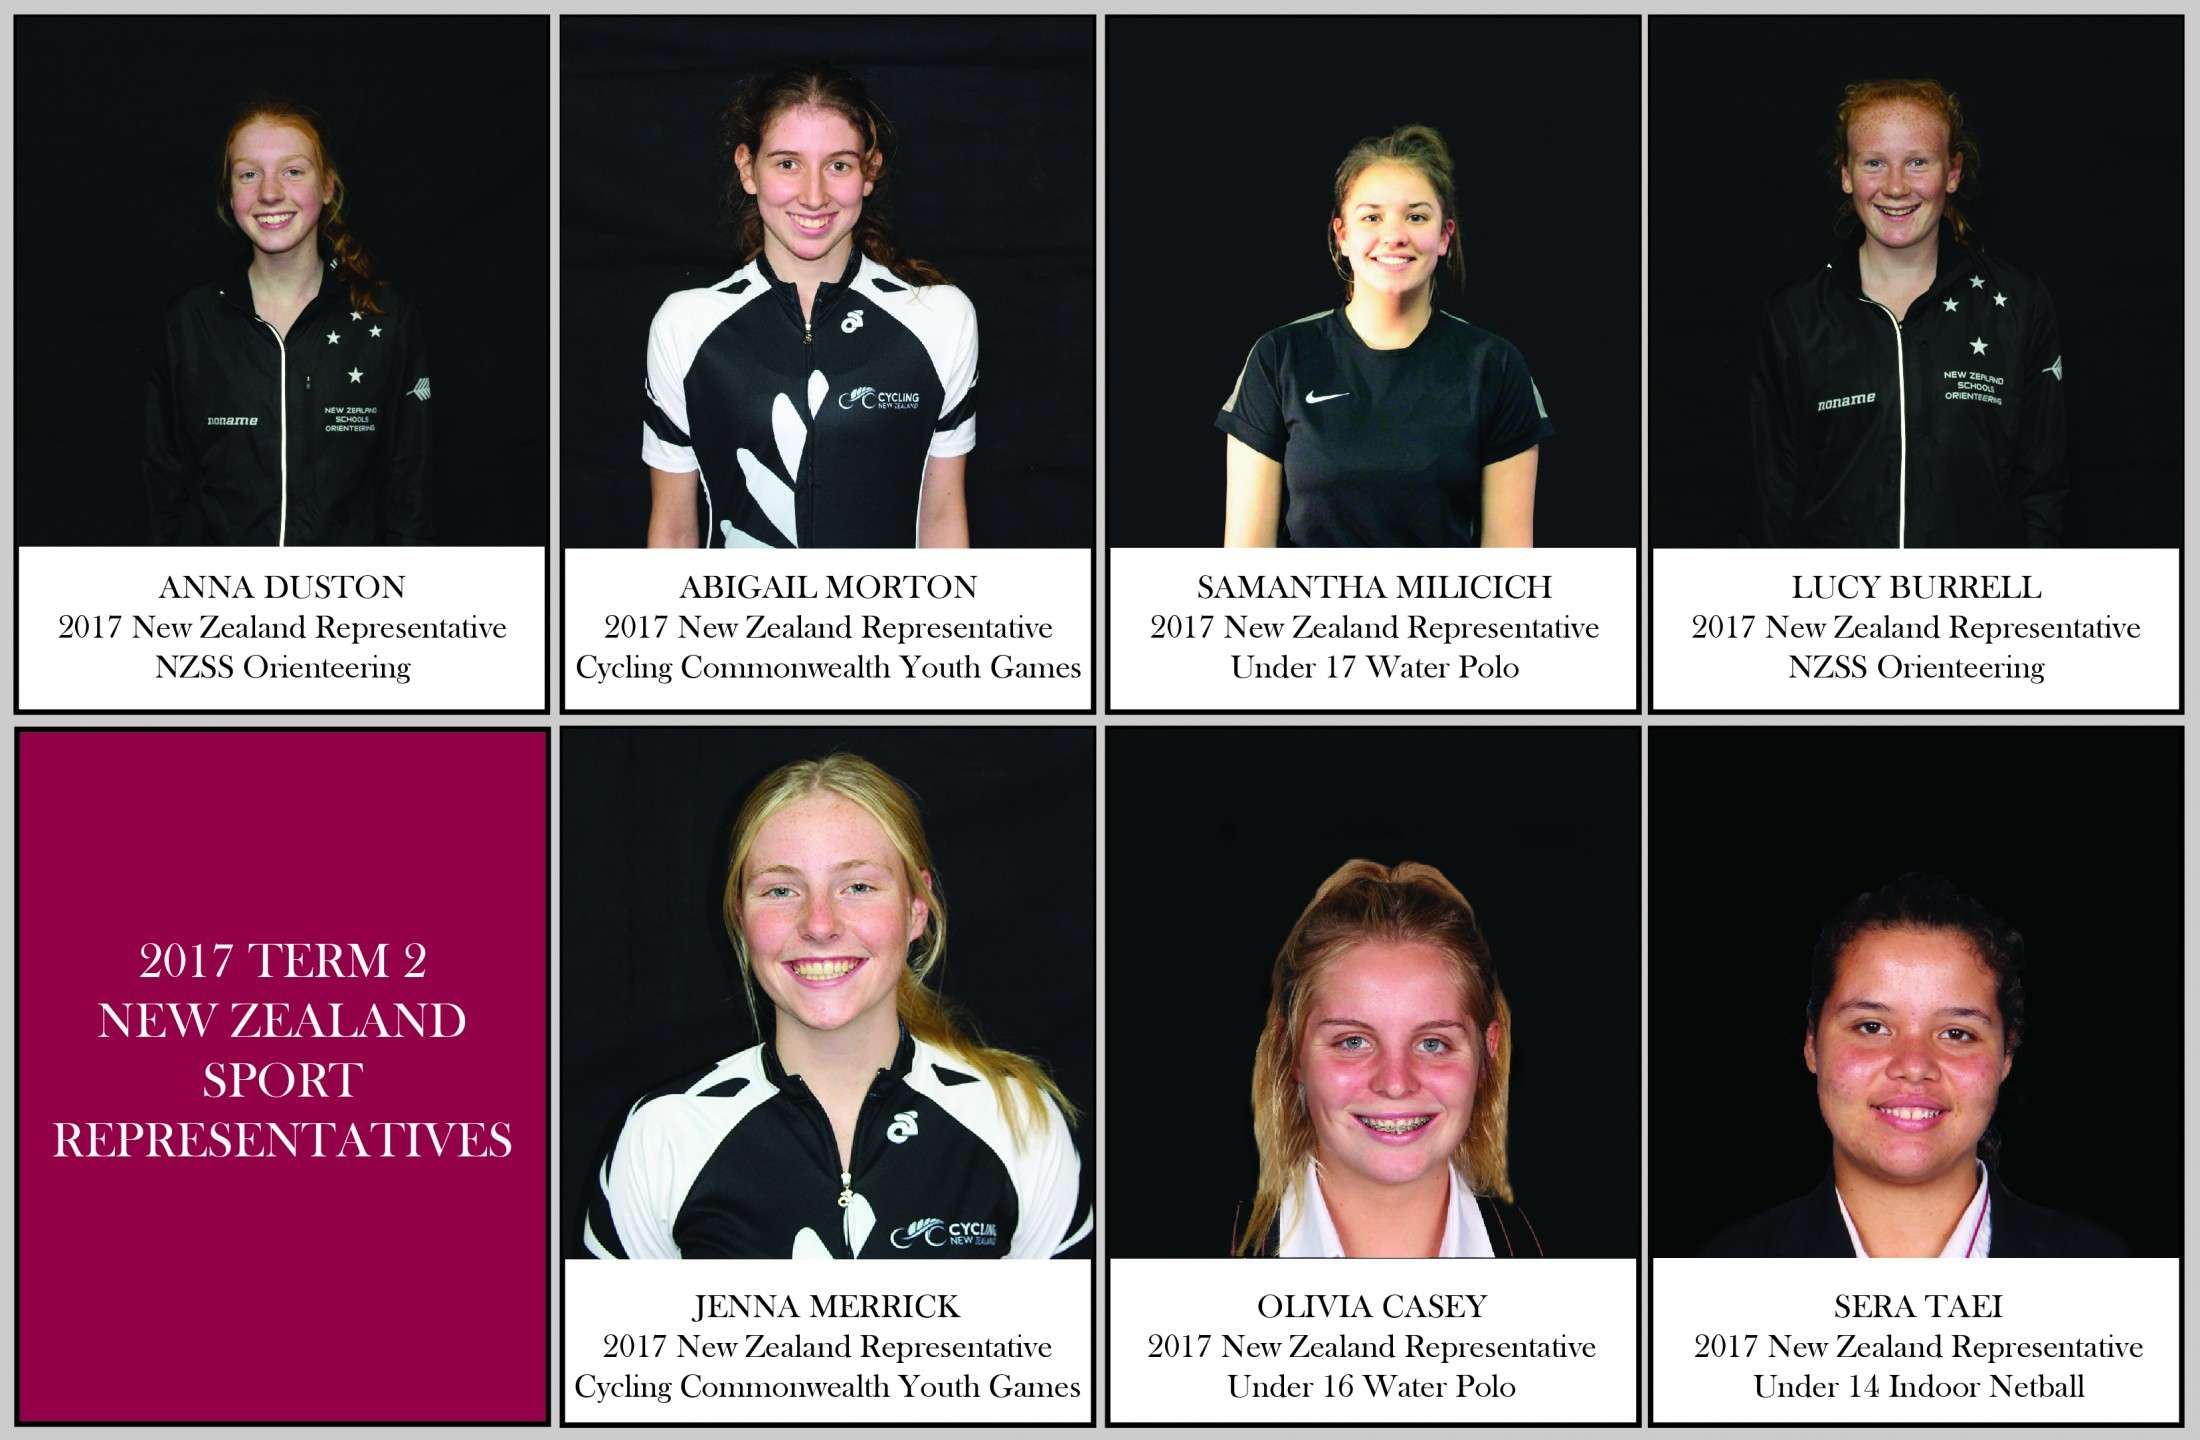 Sport Nz Reps Collage End Of Term 2